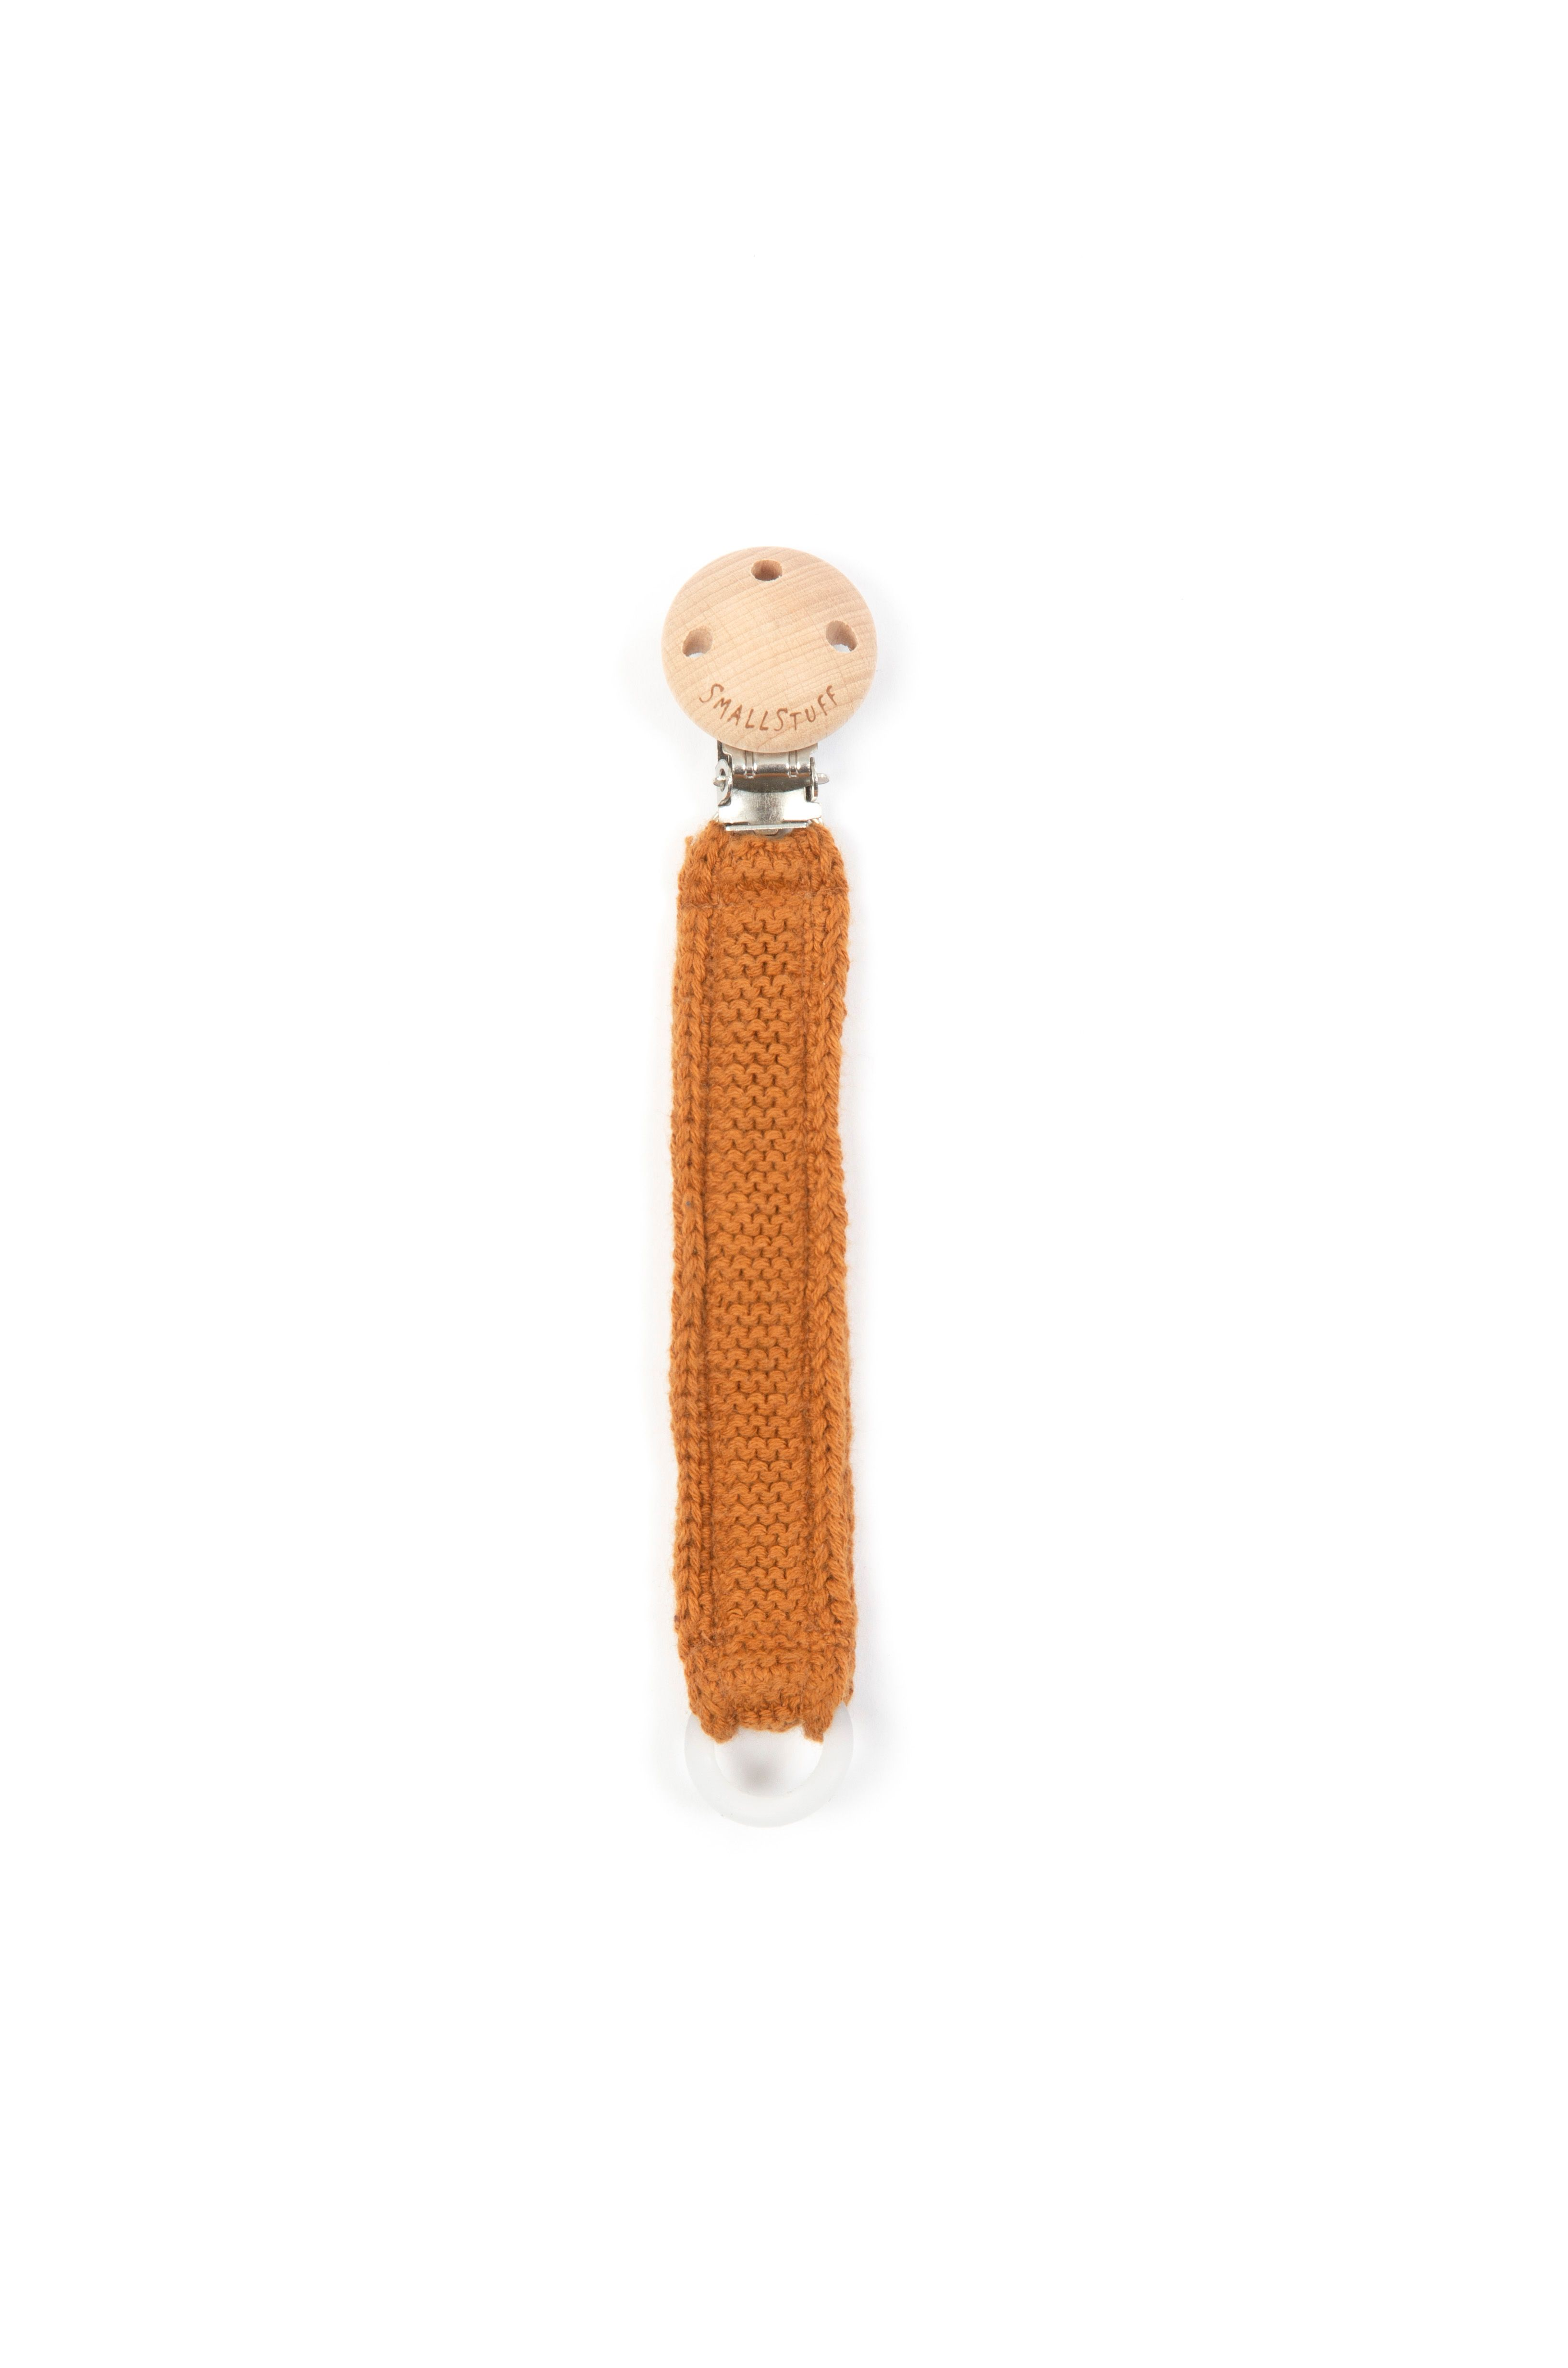 Smallstuff - Knitted Dummy Chain w. Wooden Clips - Maple Syrup